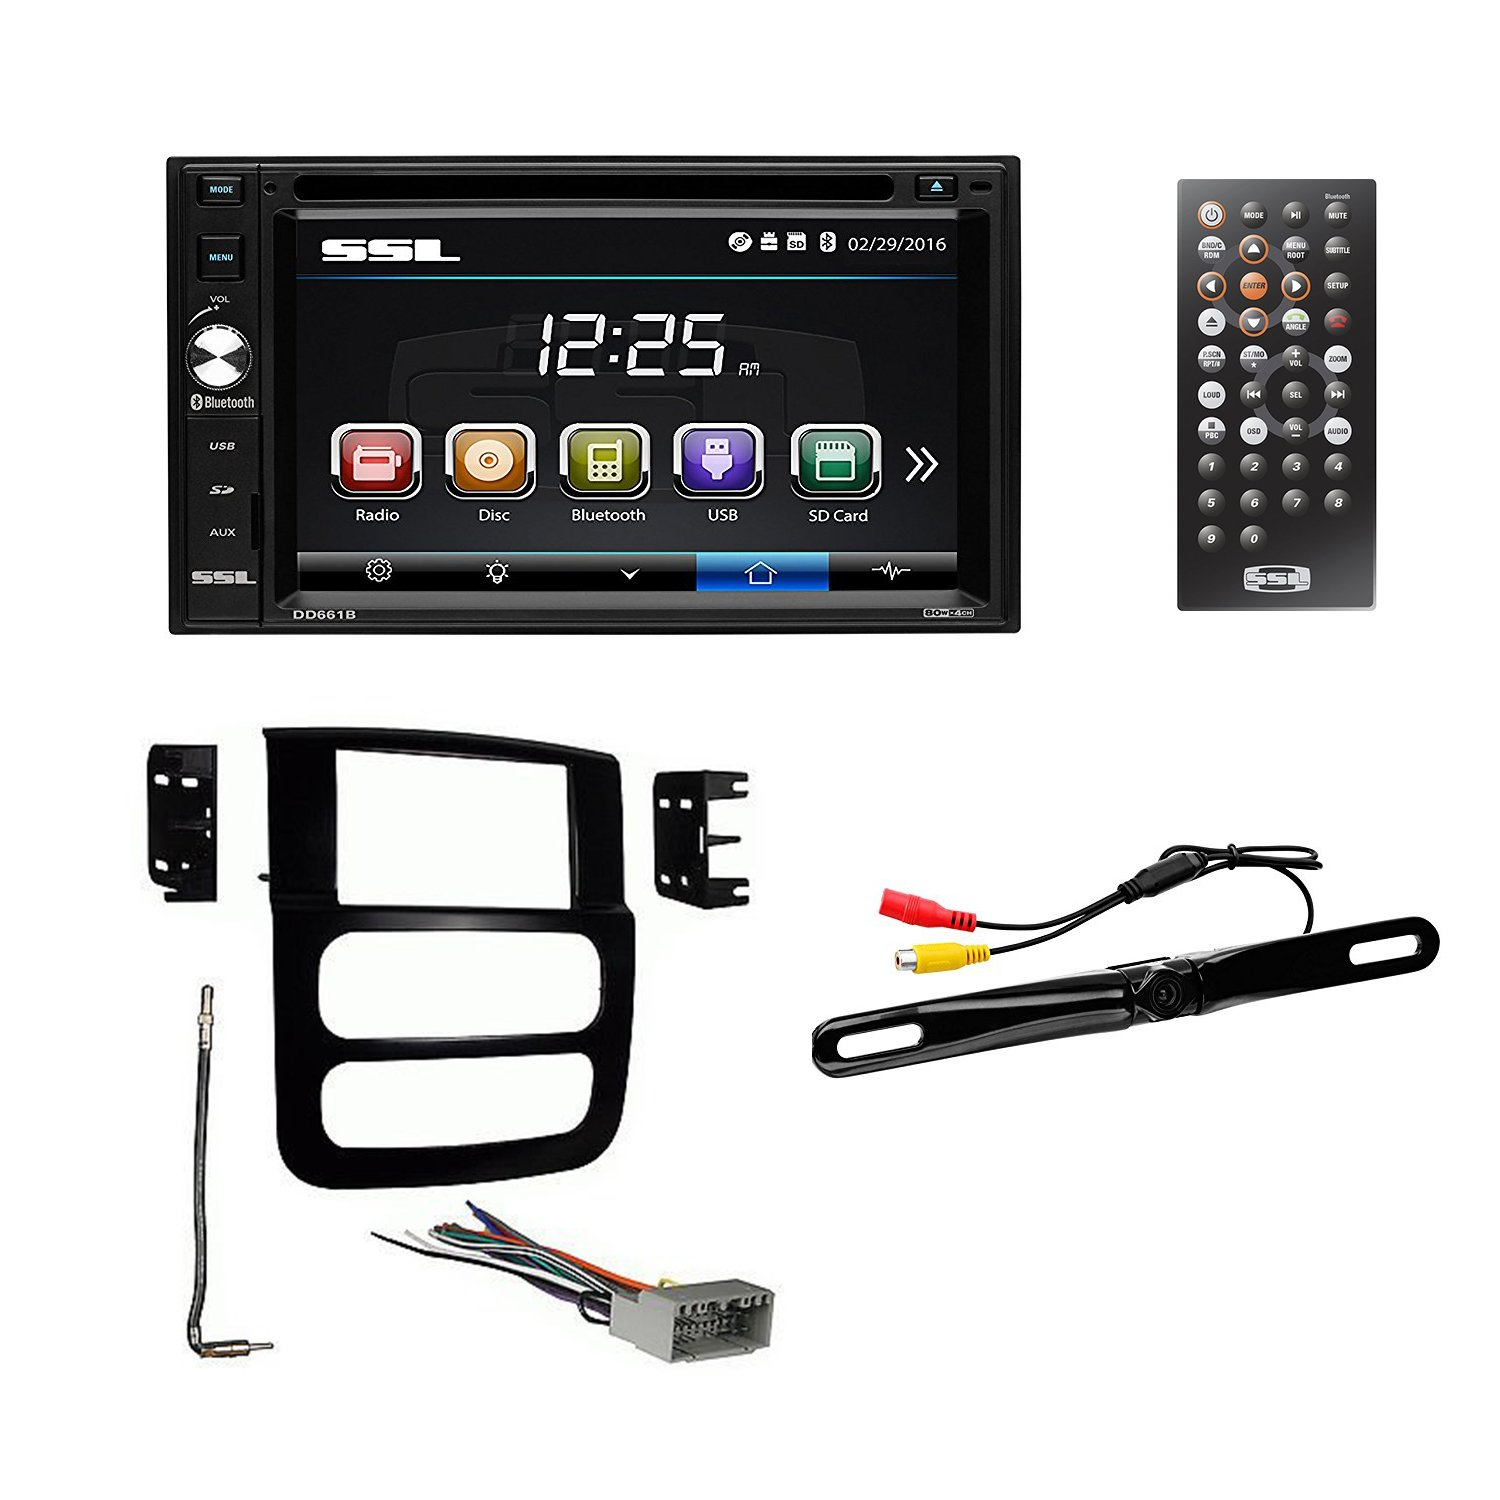 2002-05 Dodge Ram Double-Din, 6.2'' Touch Screen Monitor, DASH KIT + WIRE HARNESS + RADIO ANTENNA ADAPTER + REAR VIEW CAM